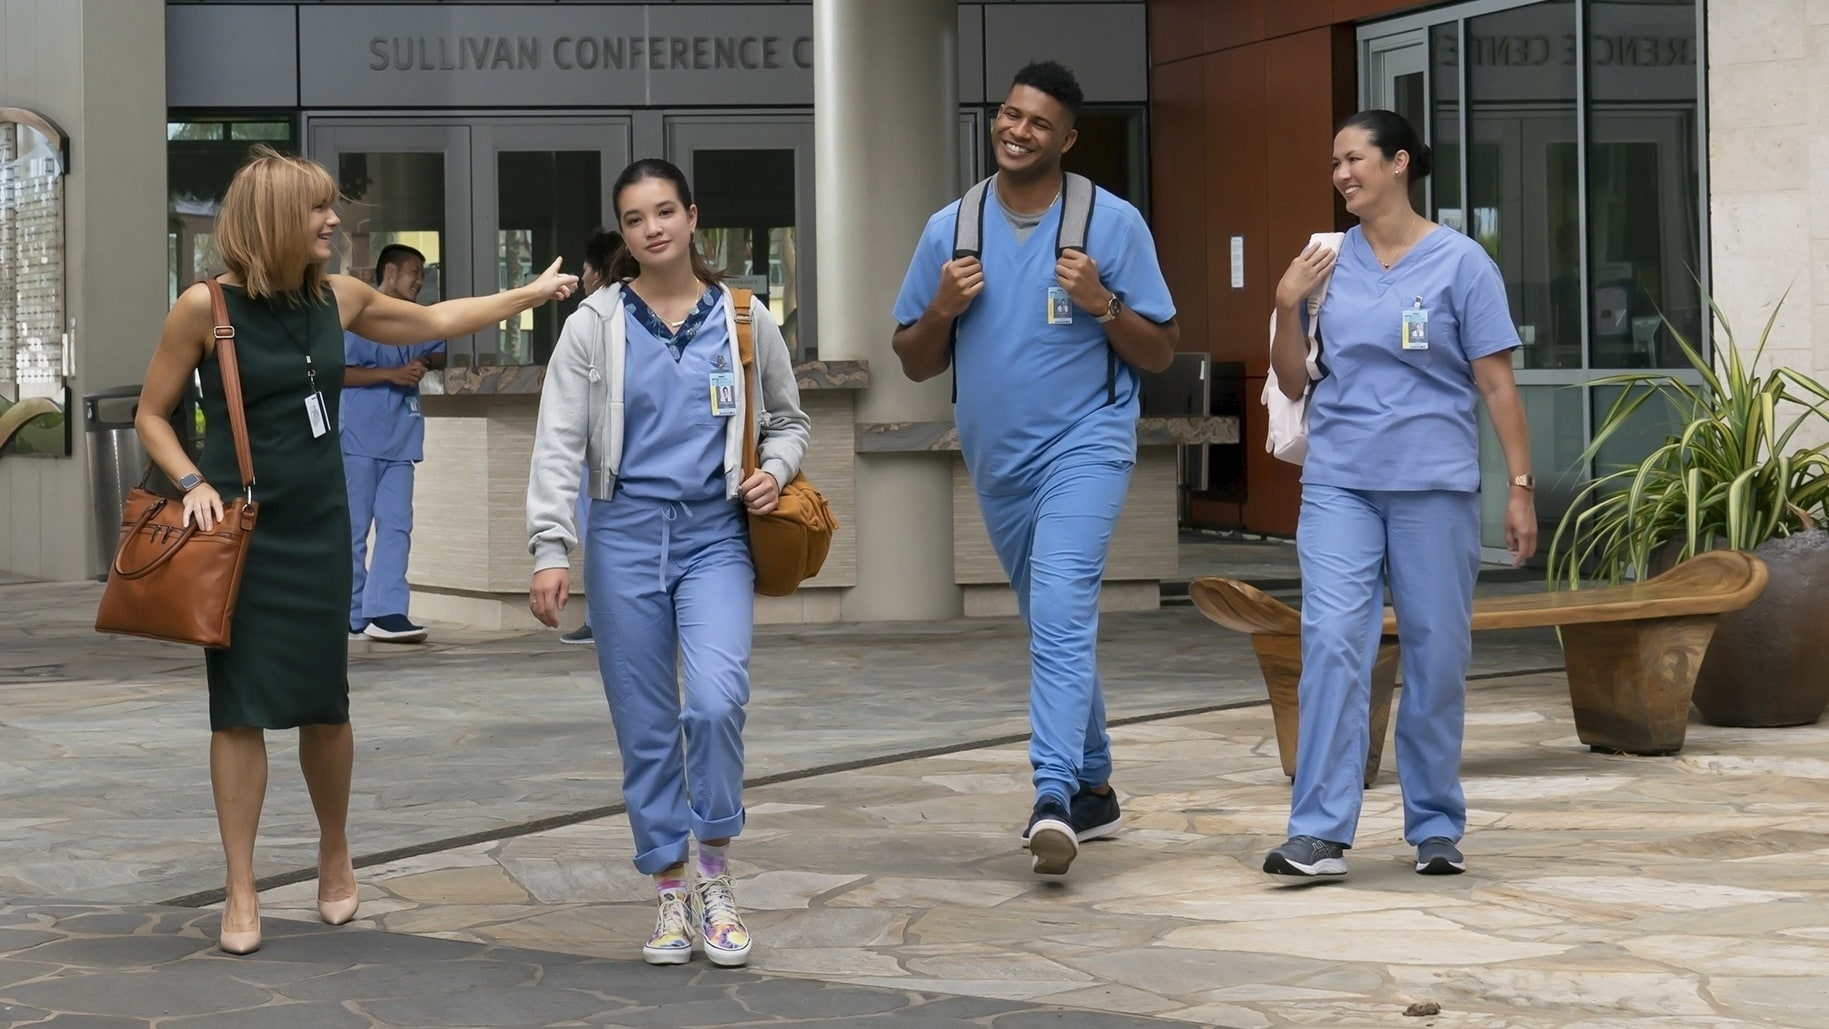 """DOOGIE KAMEALOHA, M.D. - """"License to Not Drive"""" - Yearning for freedom, Lahela defies Clara and takes the family car without permission. (Disney/Karen Neal) KATHLEEN ROSE PERKINS, PEYTON ELIZABETH LEE, JEFFREY BOWYER- CHAPMAN, MAPUANA MAKIA"""